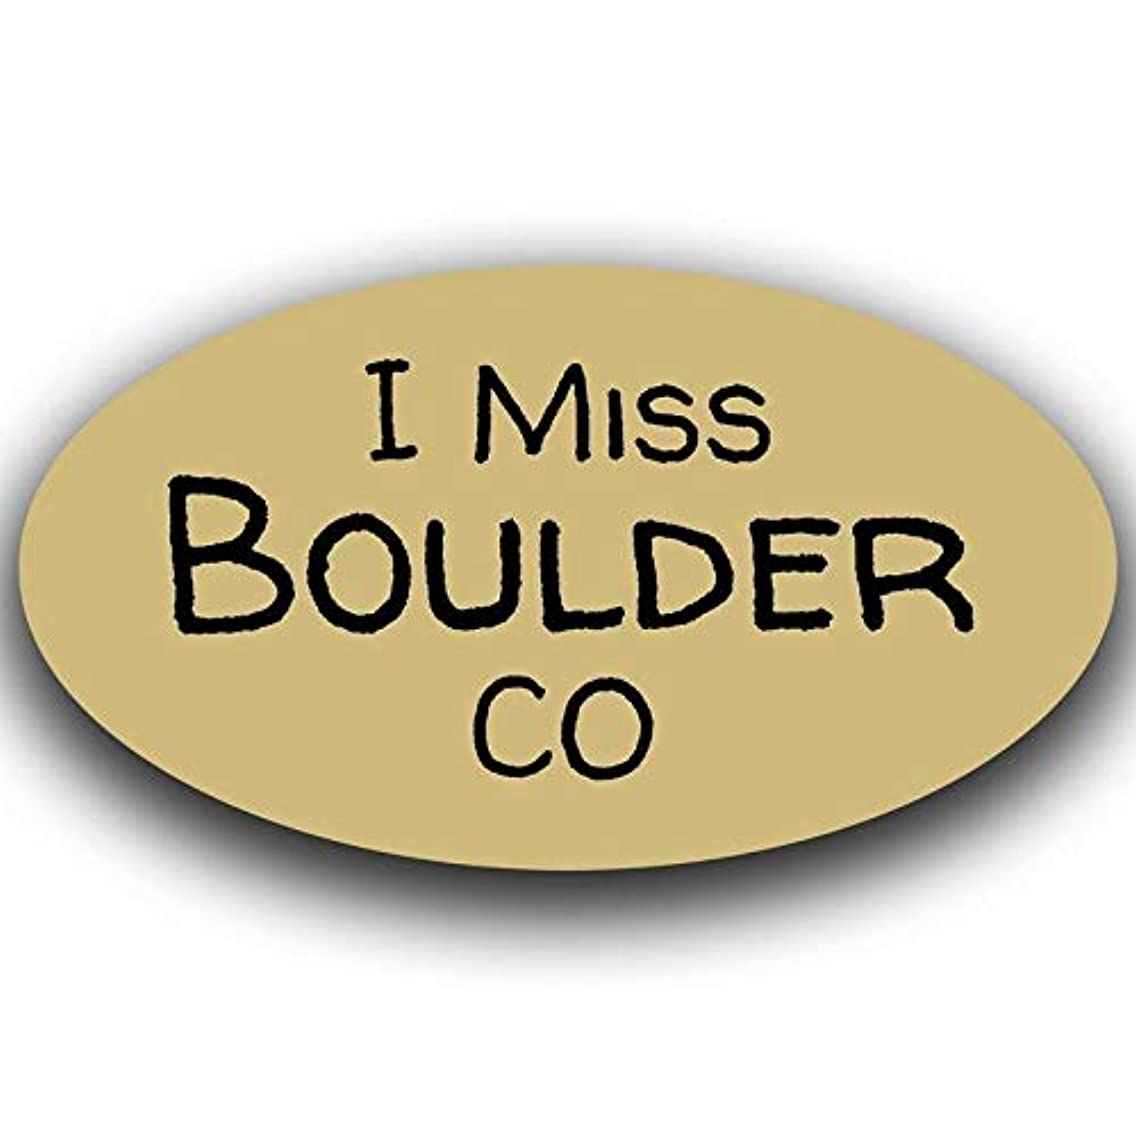 More Shiz I Miss Boulder Colorado Decal Sticker Travel Car Truck Van Bumper Window Laptop Cup Wall - One 5.5 Inch Decal - MKS0451